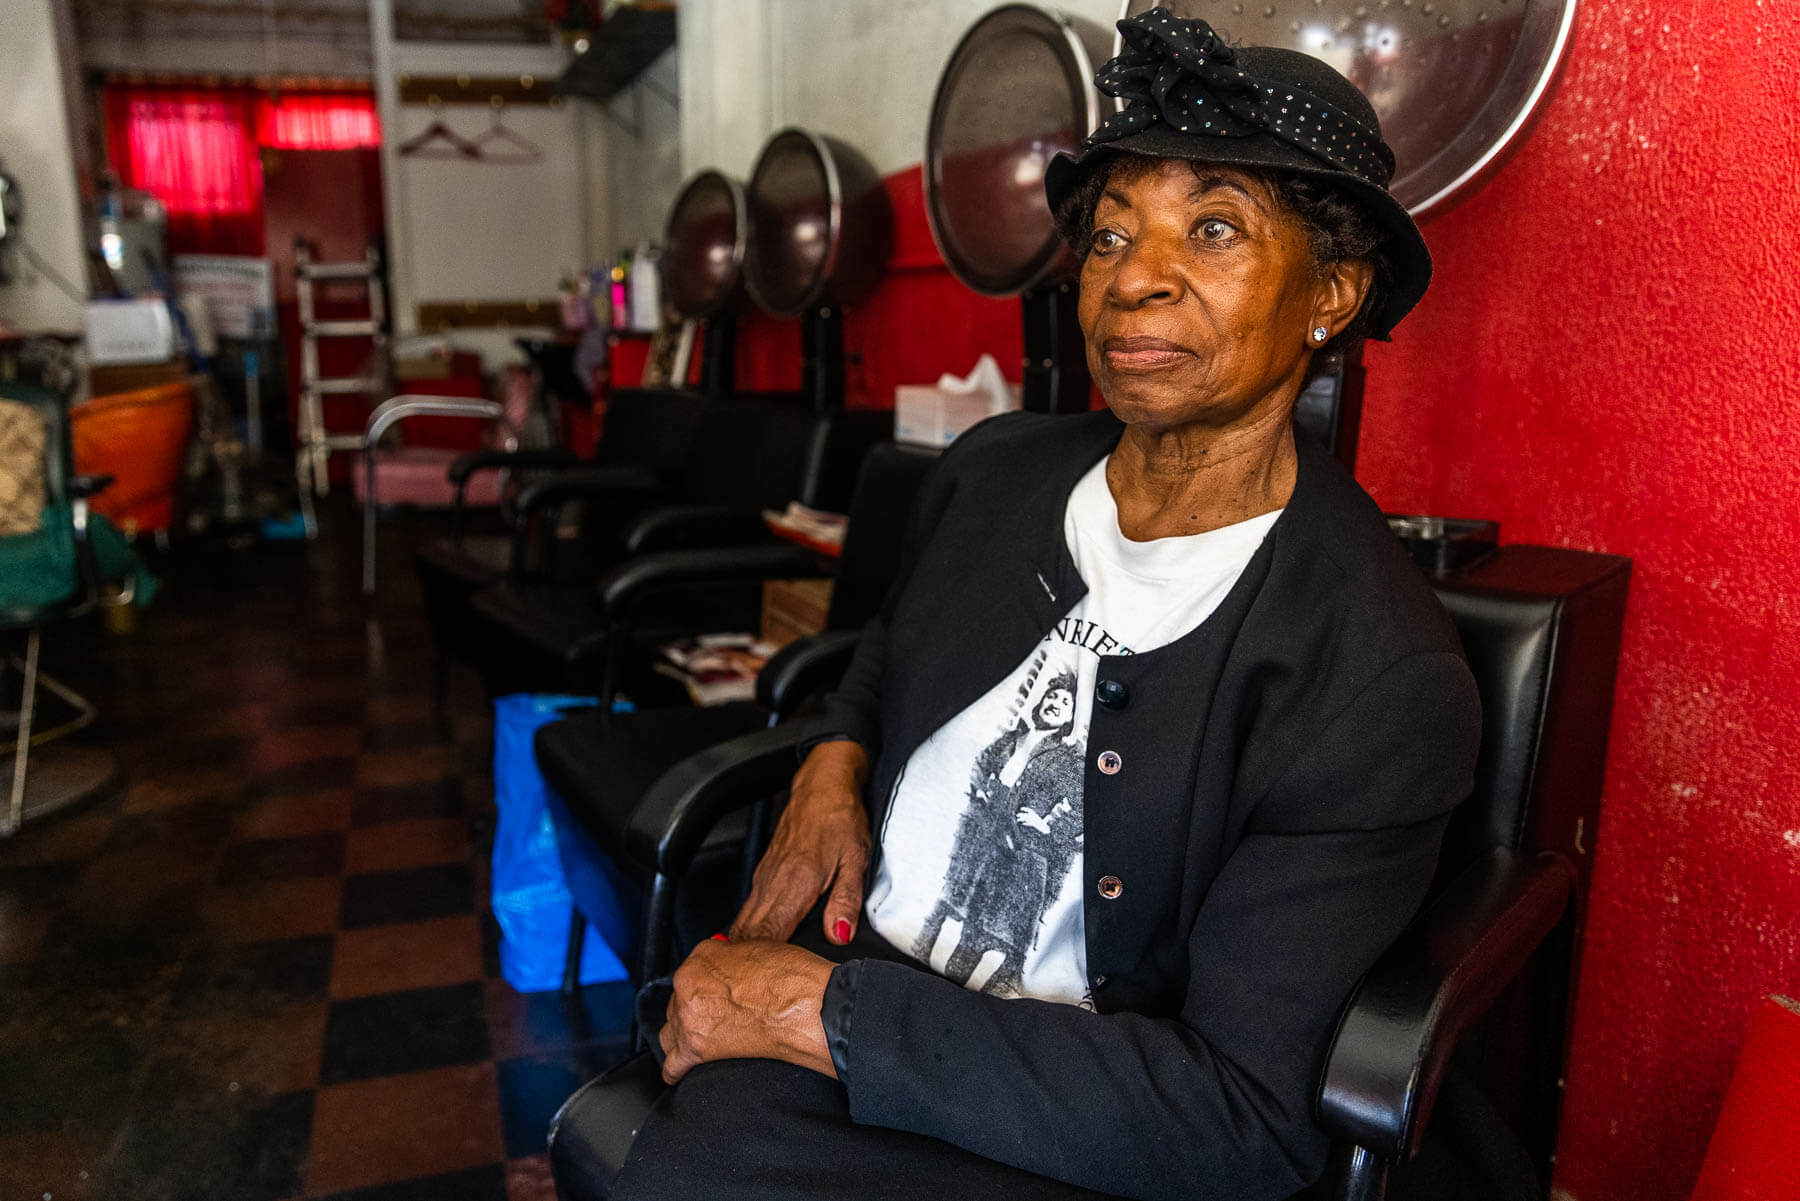 Turner Station resident Courtney Speed sits in a beauty salon.